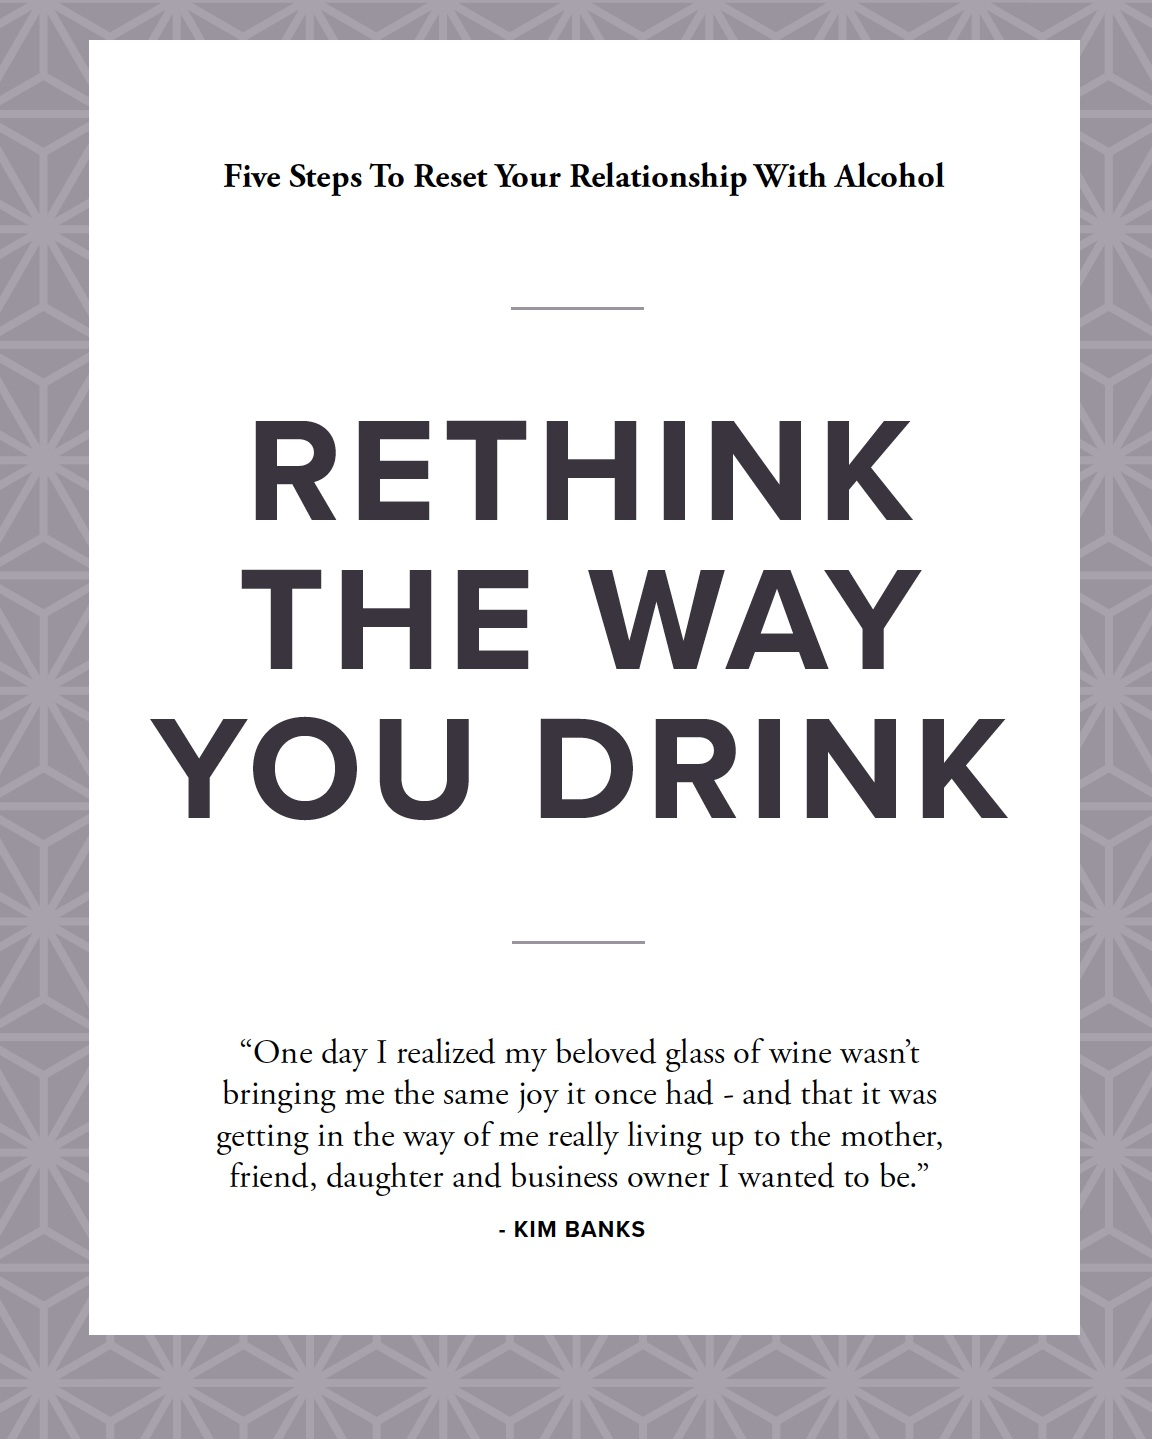 - FREE Five-Step Guide to Rethink The Way You Drink.Rethinking the way you drink is a smart way to improve your mental, physical and emotional health. You might think it will be tough to change a habit, but it doesn't have to be!